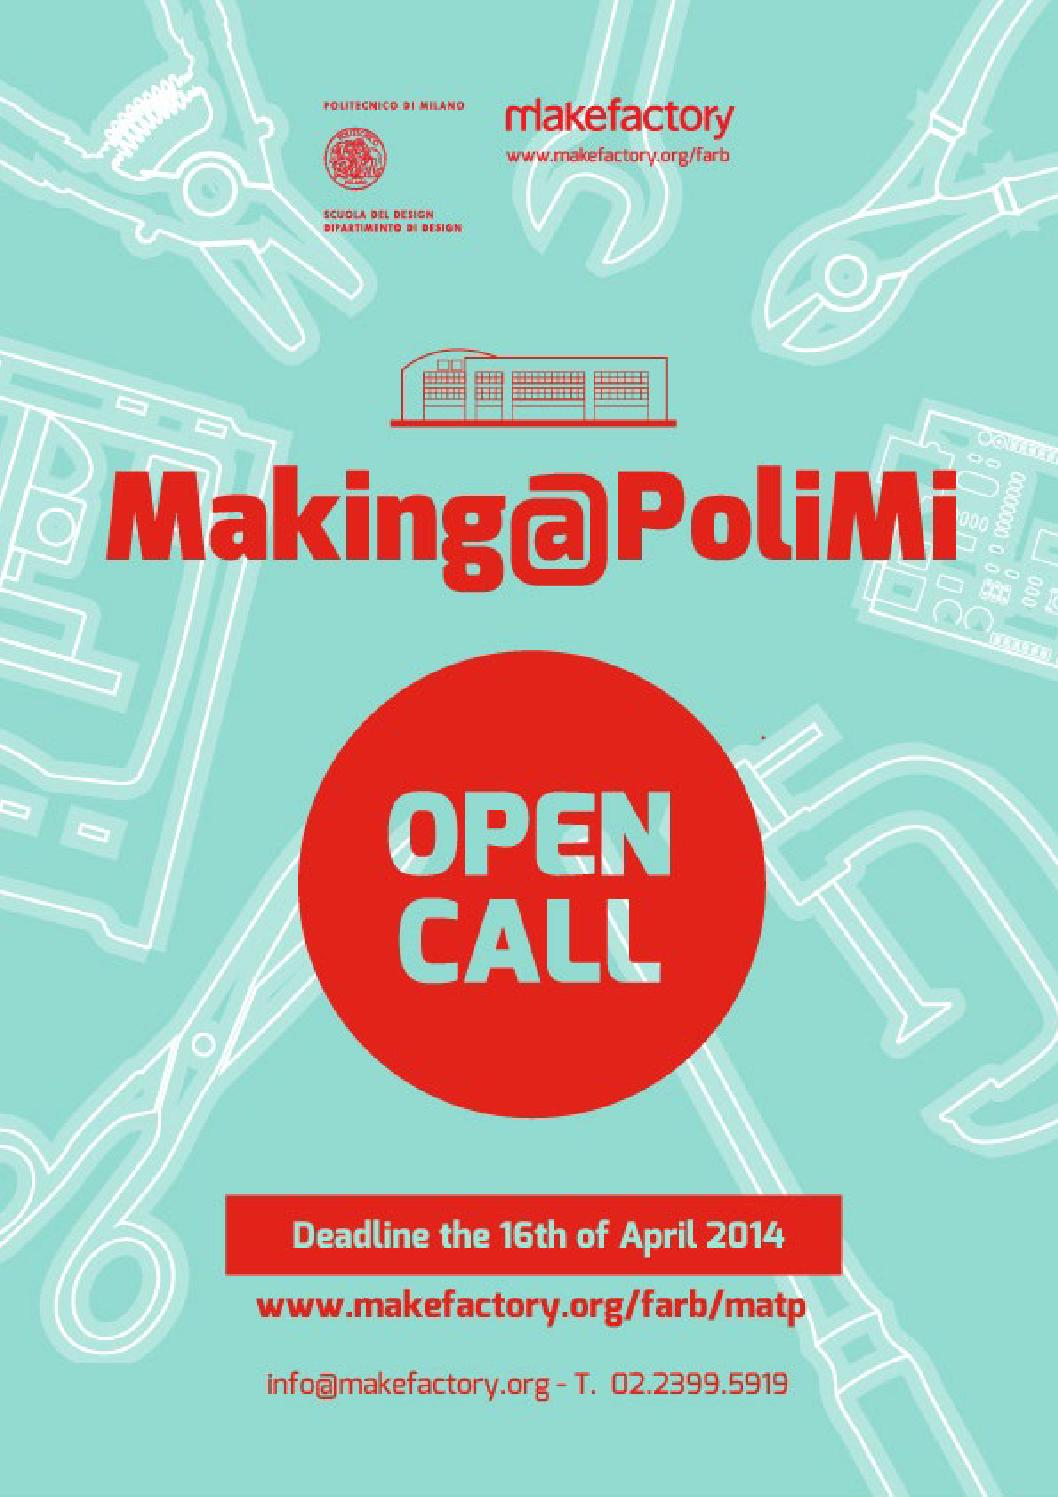 The master is directed by fausto brevi, professor at the scuola del design del politecnico di milano, and is offered to a limited number of maximum 20. Making Polimi Open Call By Makefactory Issuu